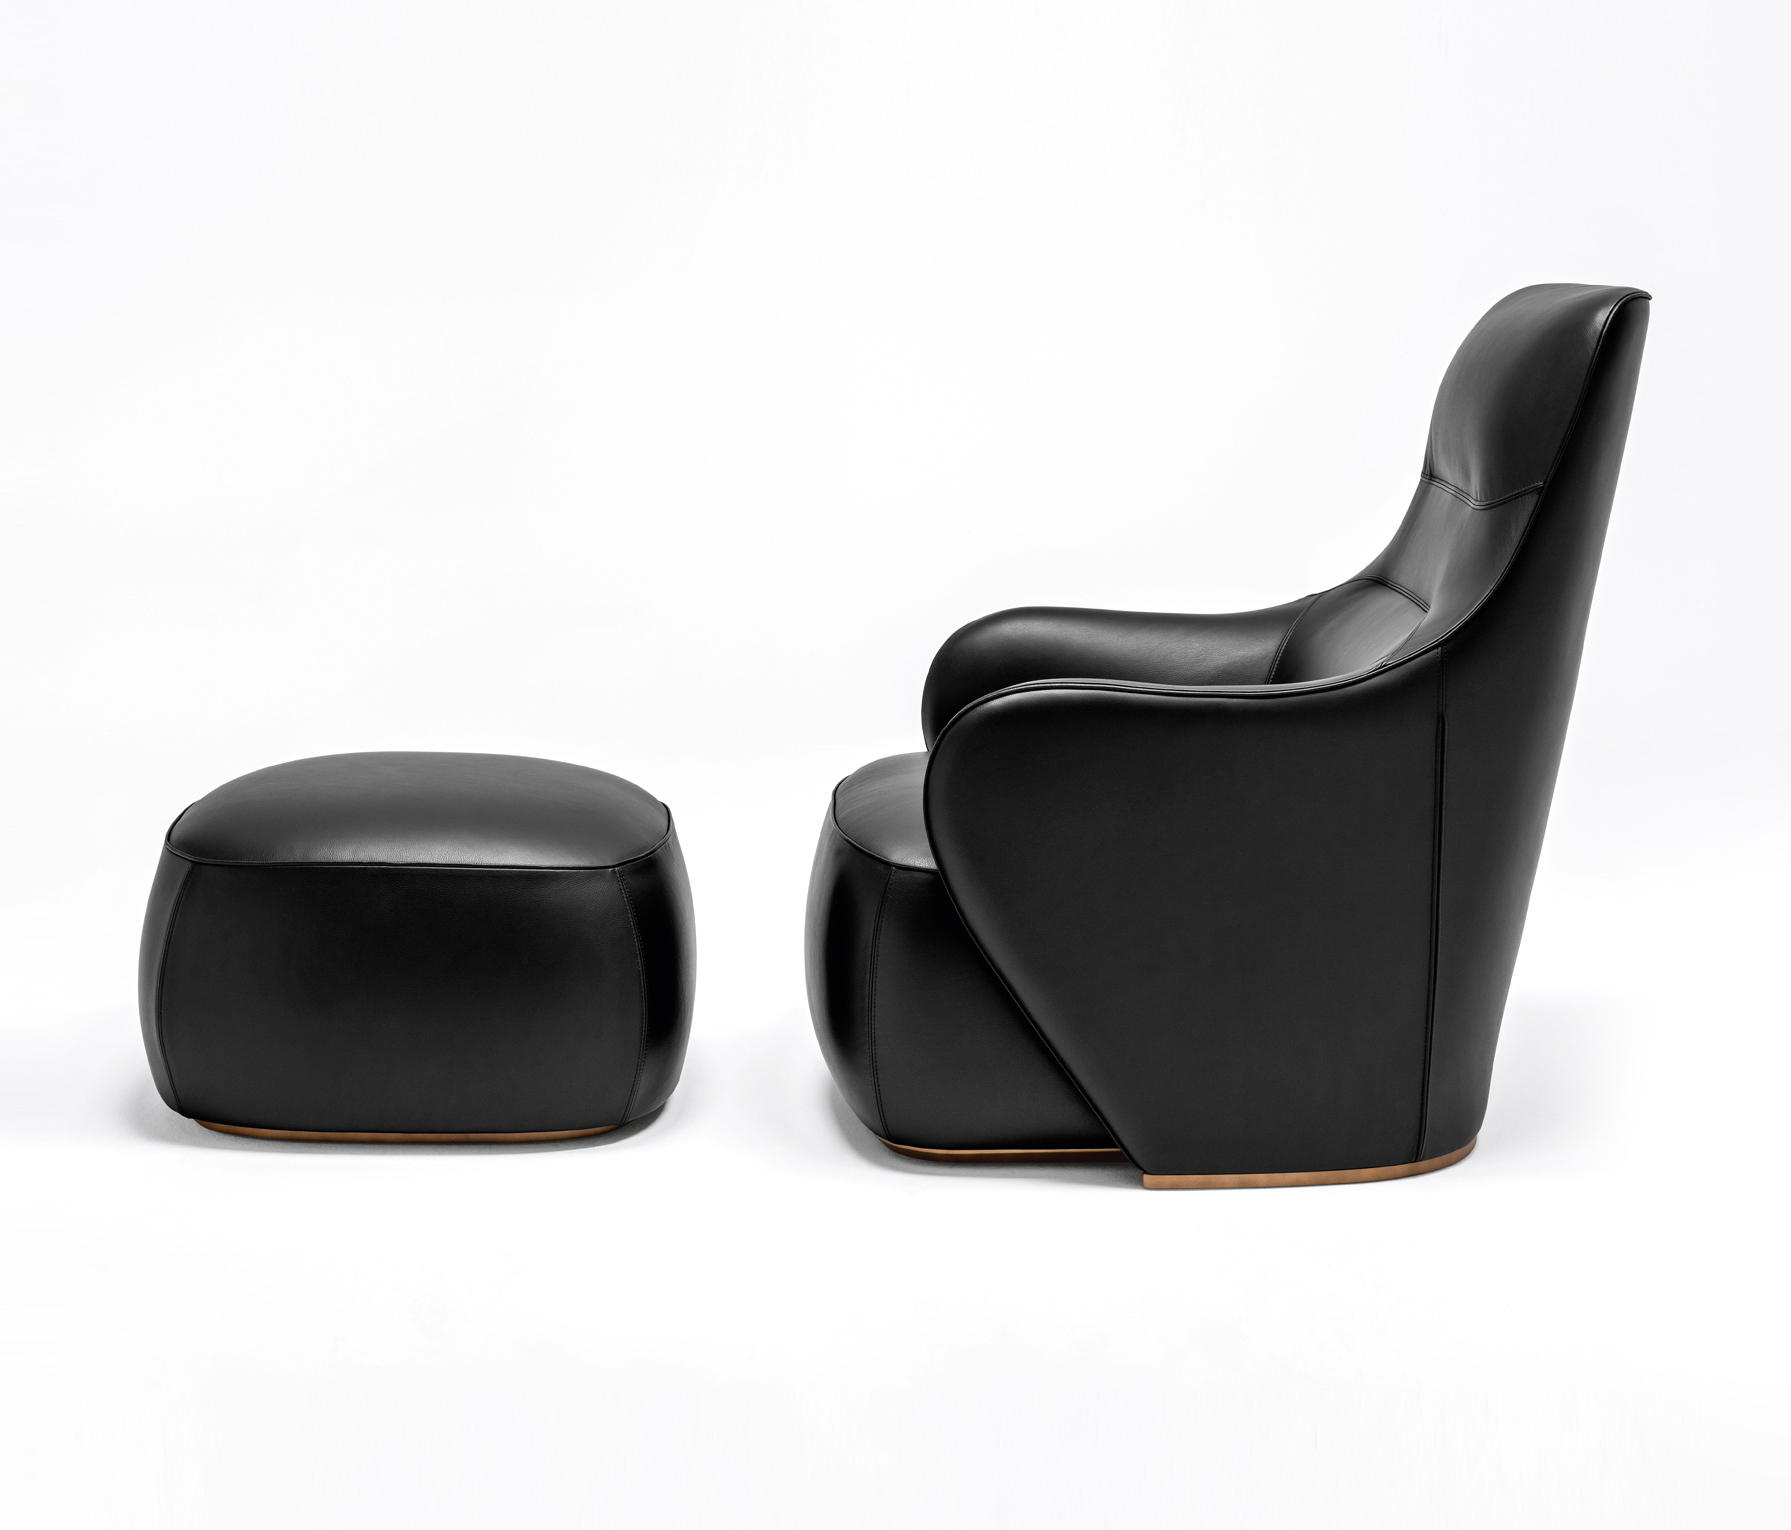 CADDY WING CHAIR Lounge chairs from Gior ti